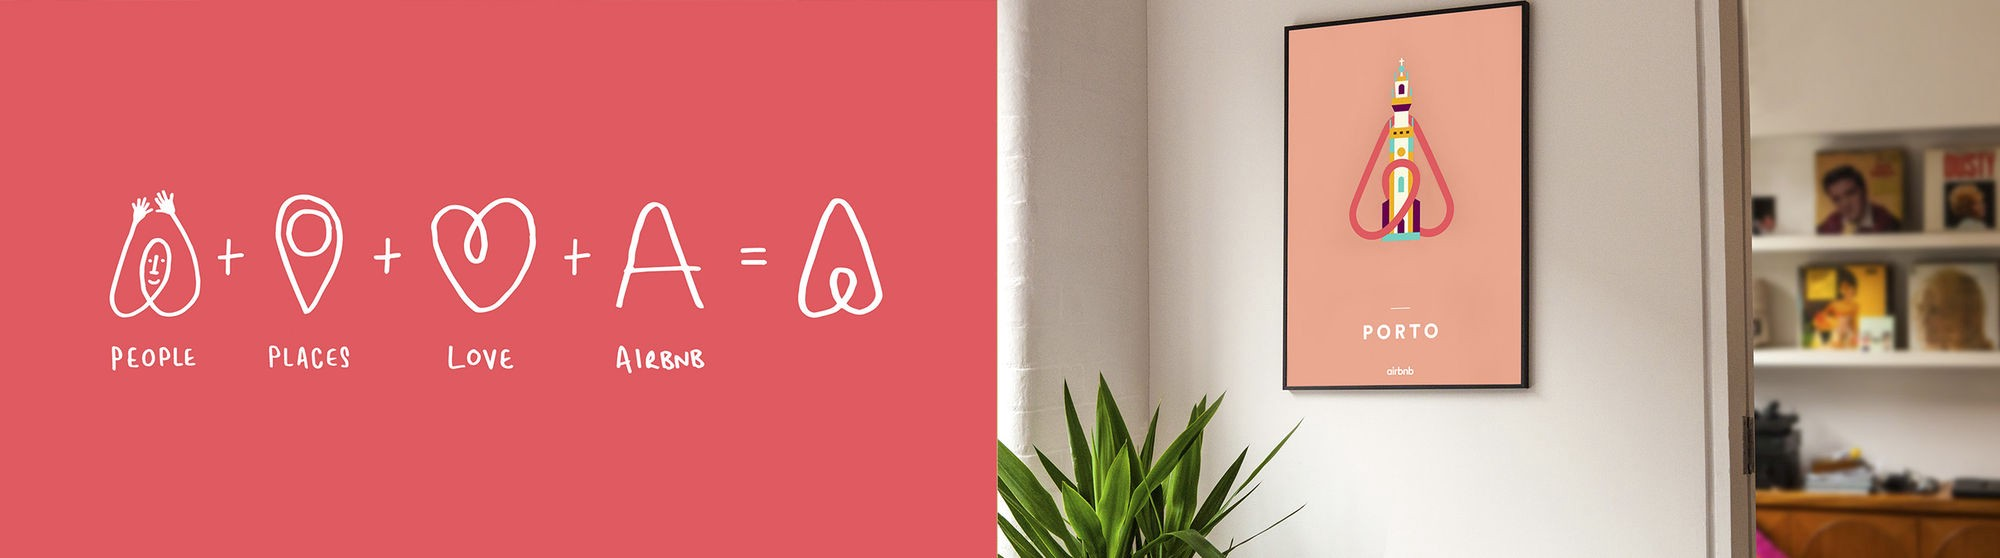 Airbnb design philosophy and consistency